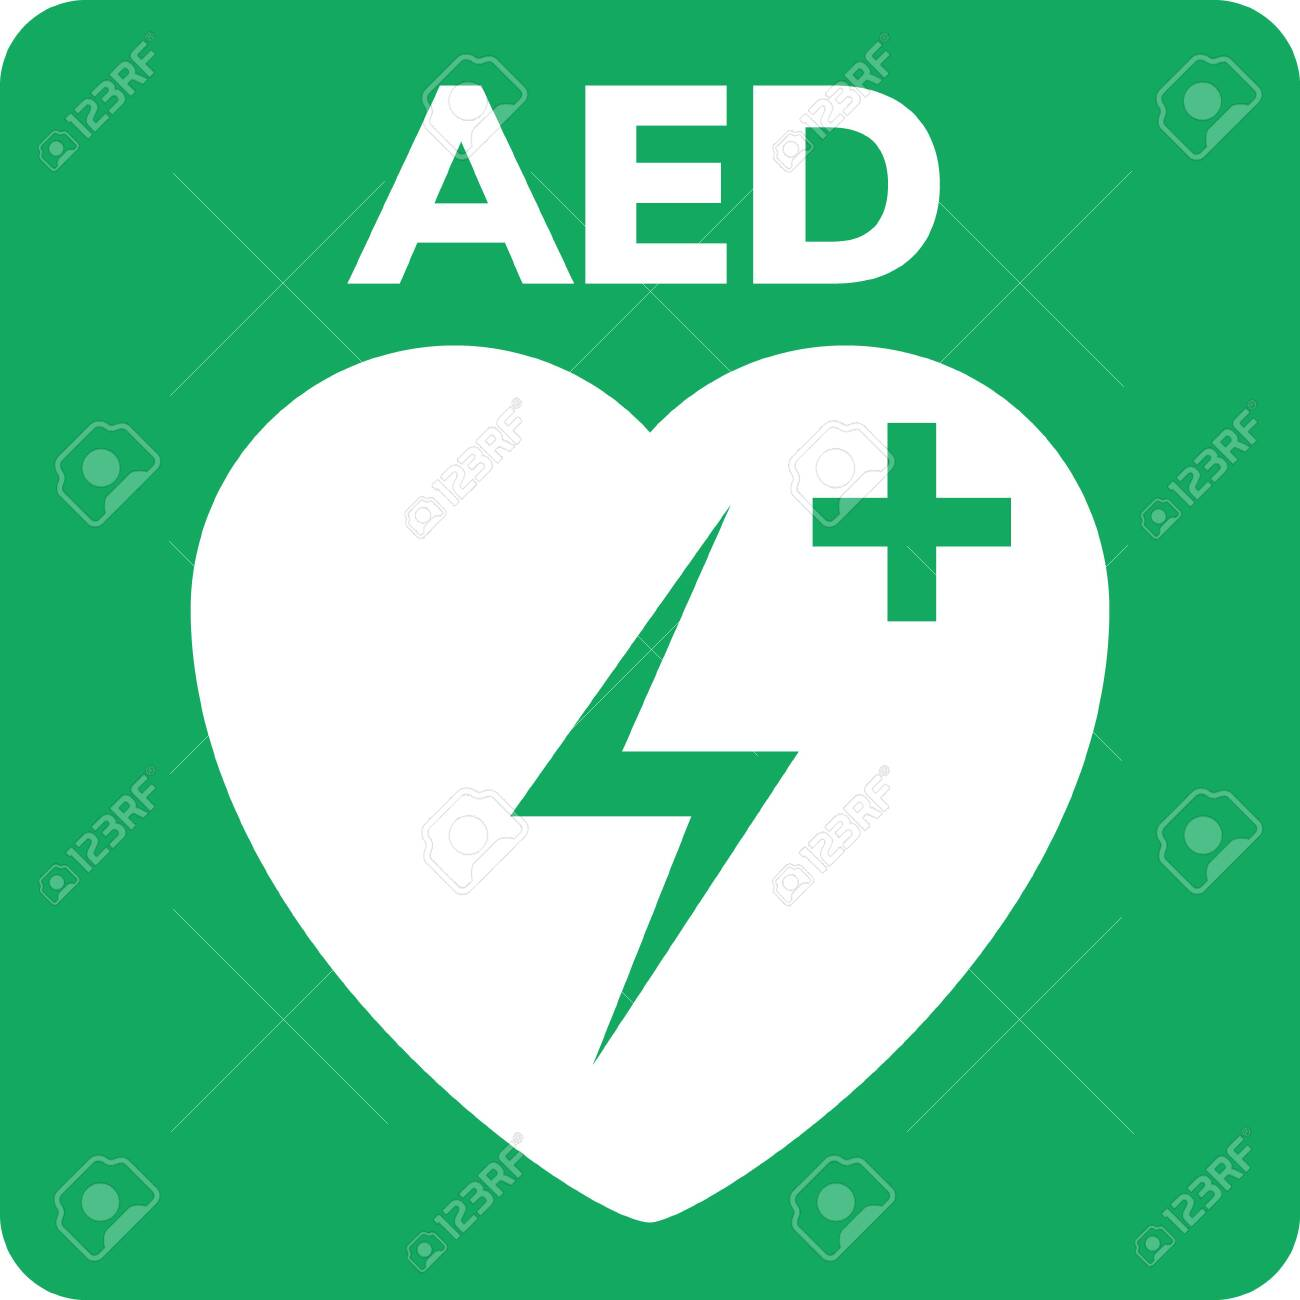 AED symbol icon  Heart first aid defibrillator sign  Automated